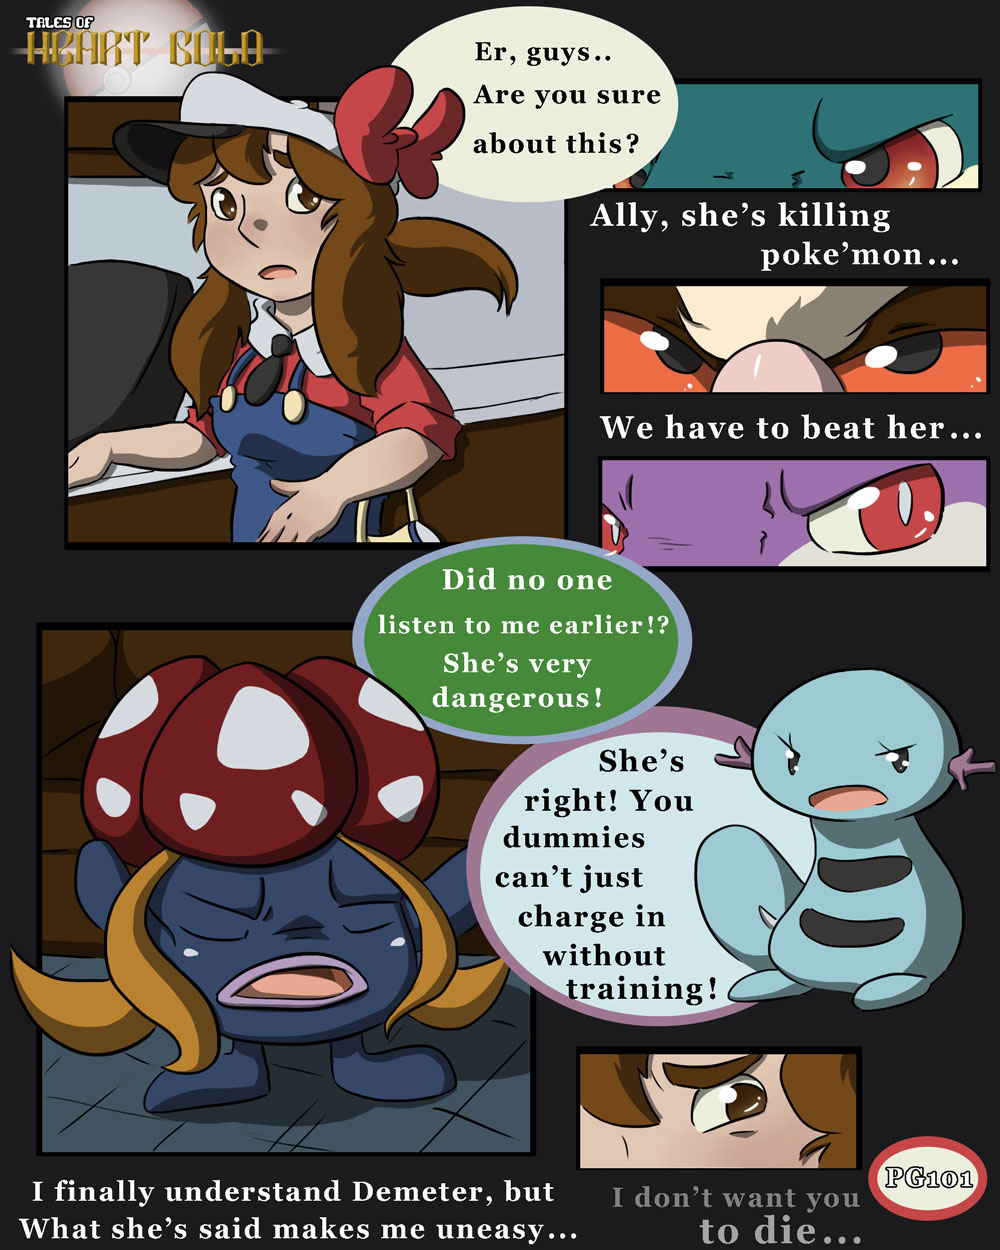 Big City PG25: We have to